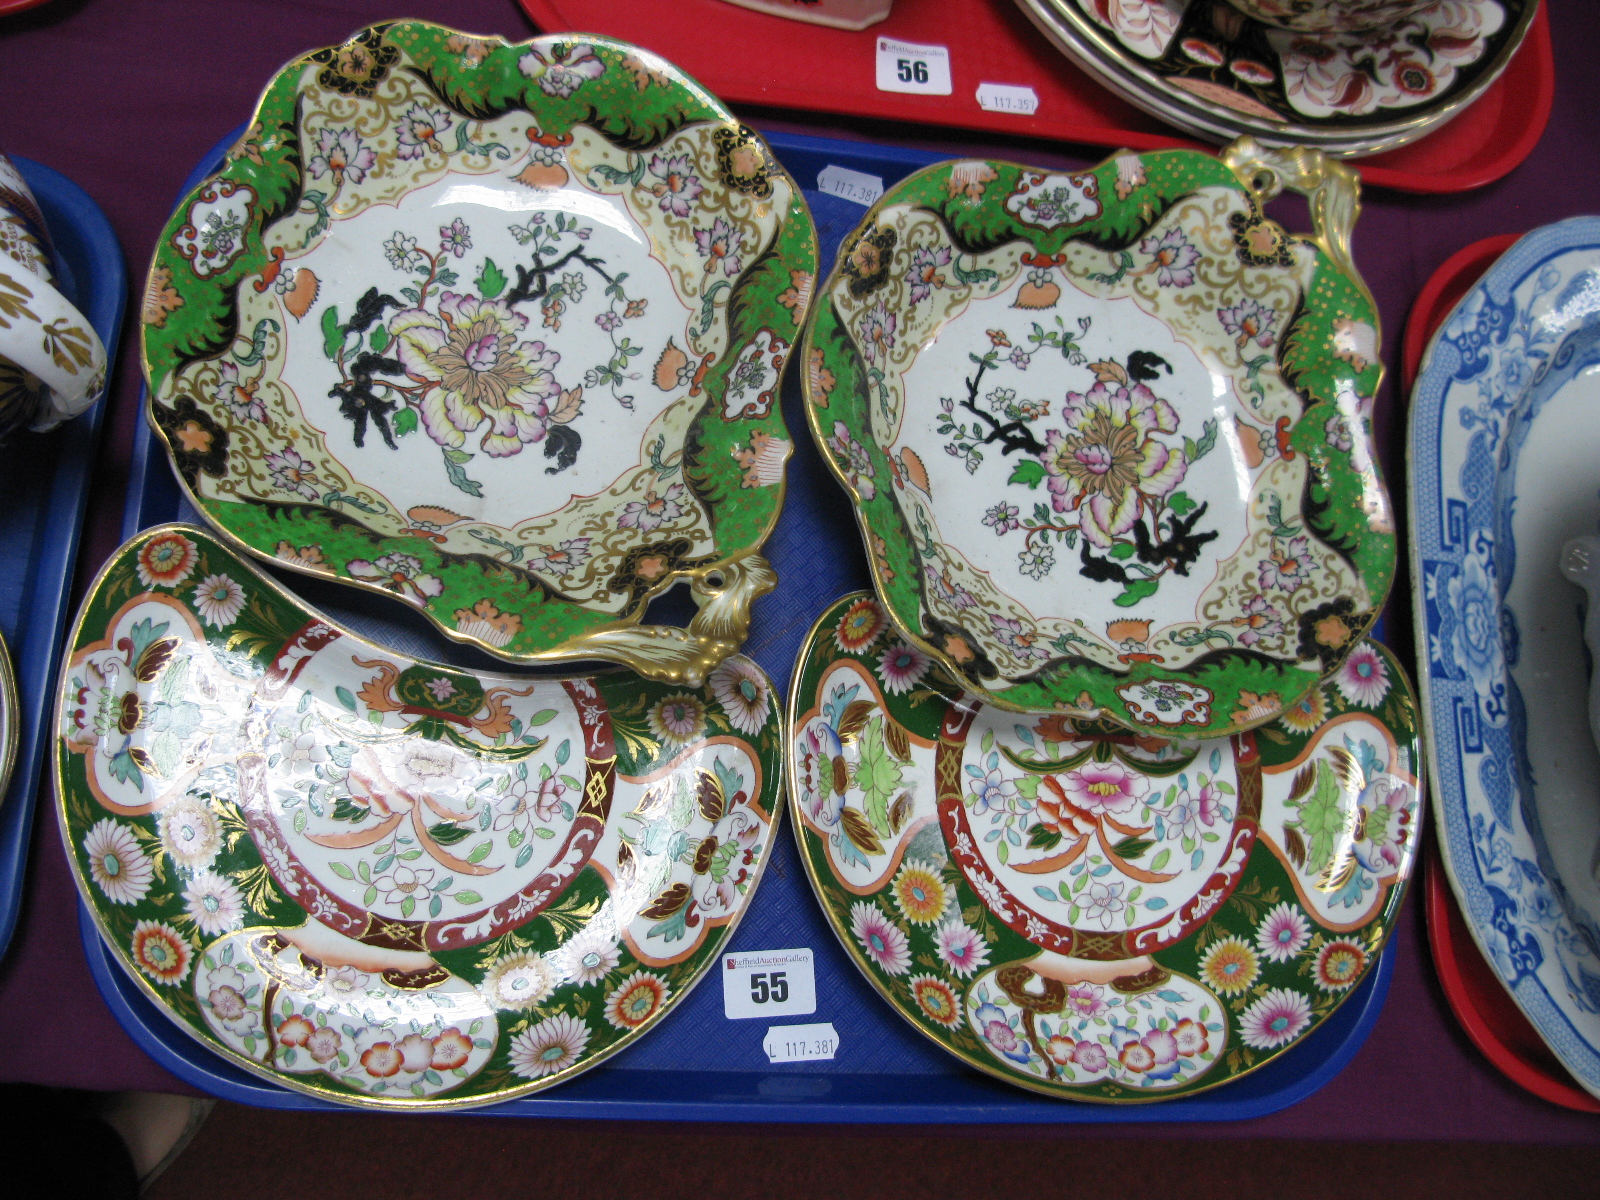 A Pair of Mason's Ironstone Bon Bon Dishes, with gilt leaf scroll handles and two similar salad